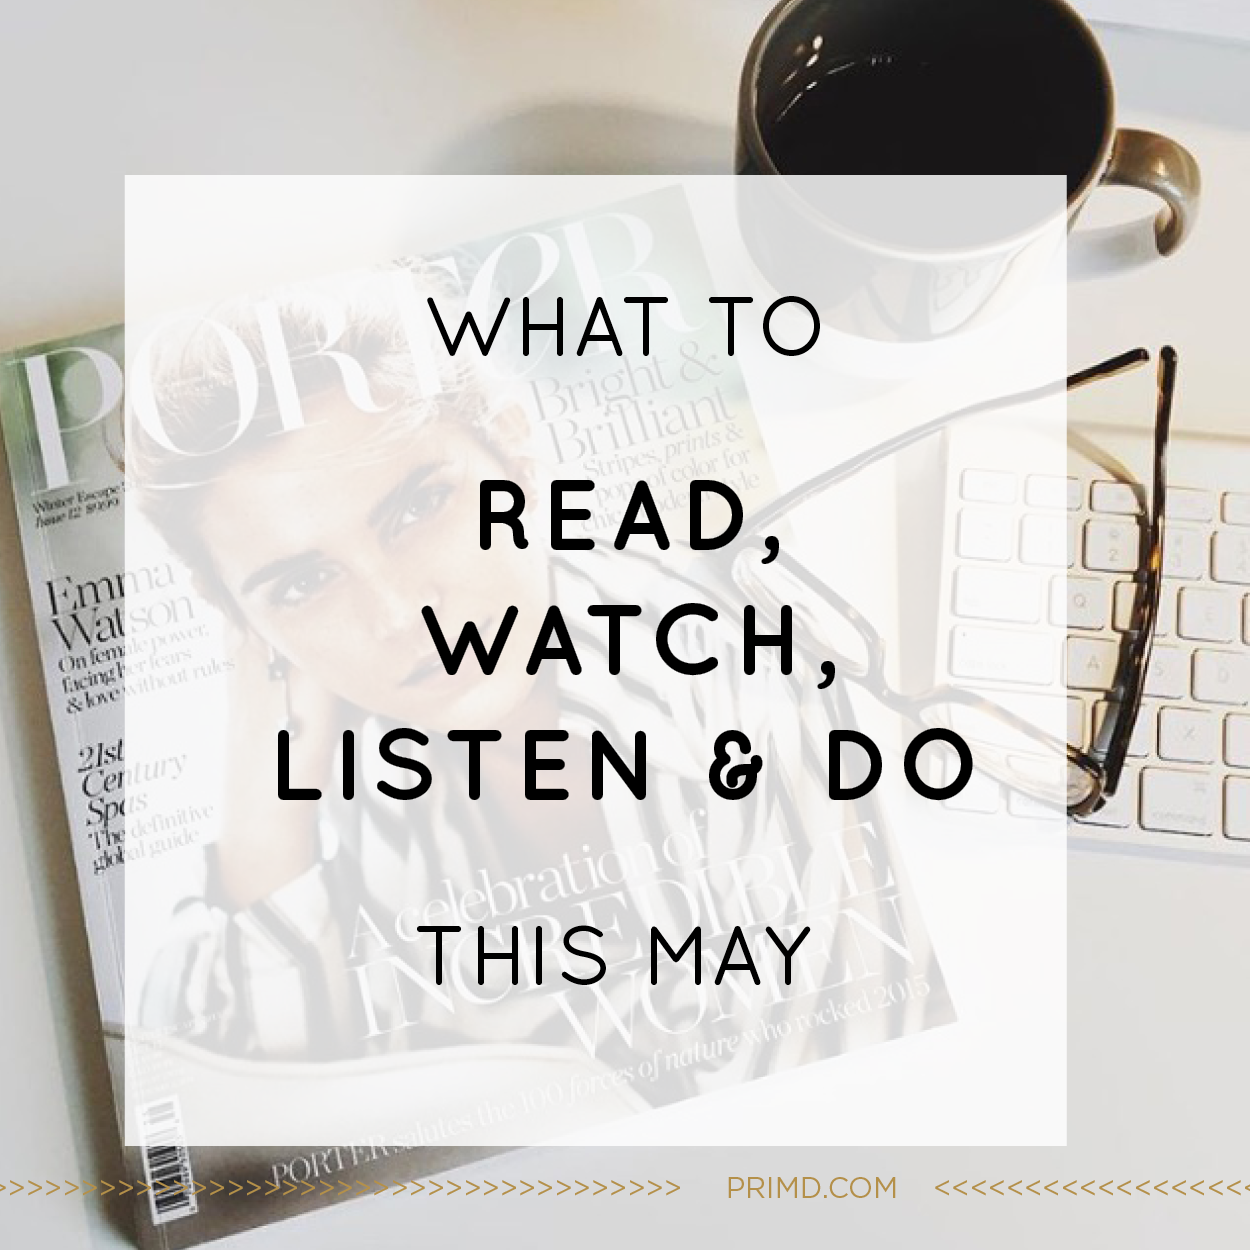 Primd Marketing - Read Watch Listen Do May